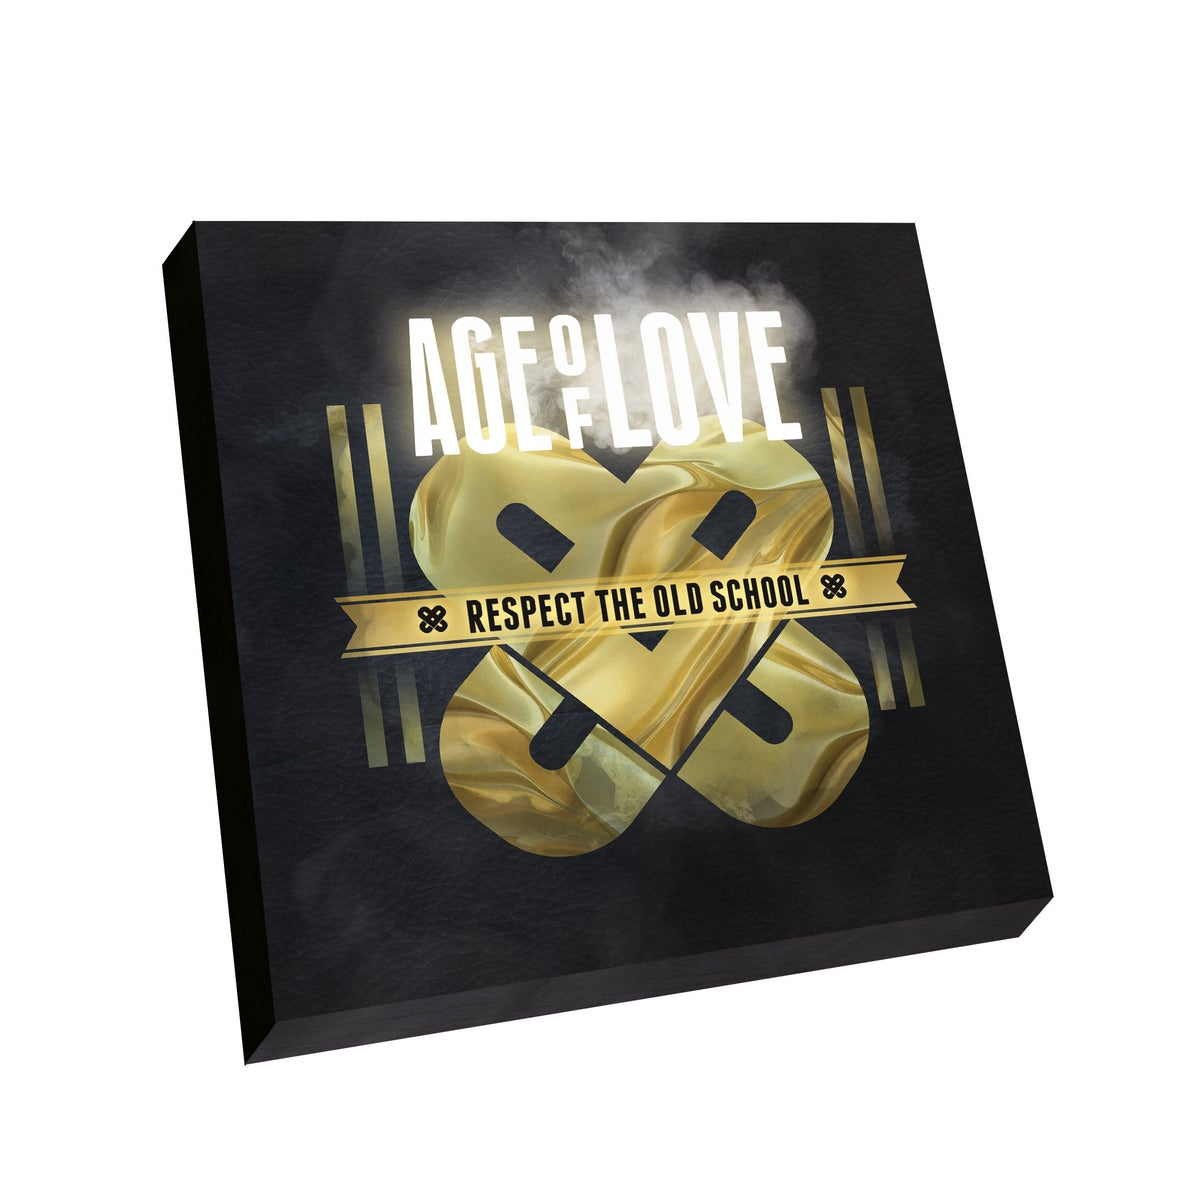 Image of VARIOUS ARTISTS: AGE OF LOVE 10 YEARS (Deluxe 5CD box-set)